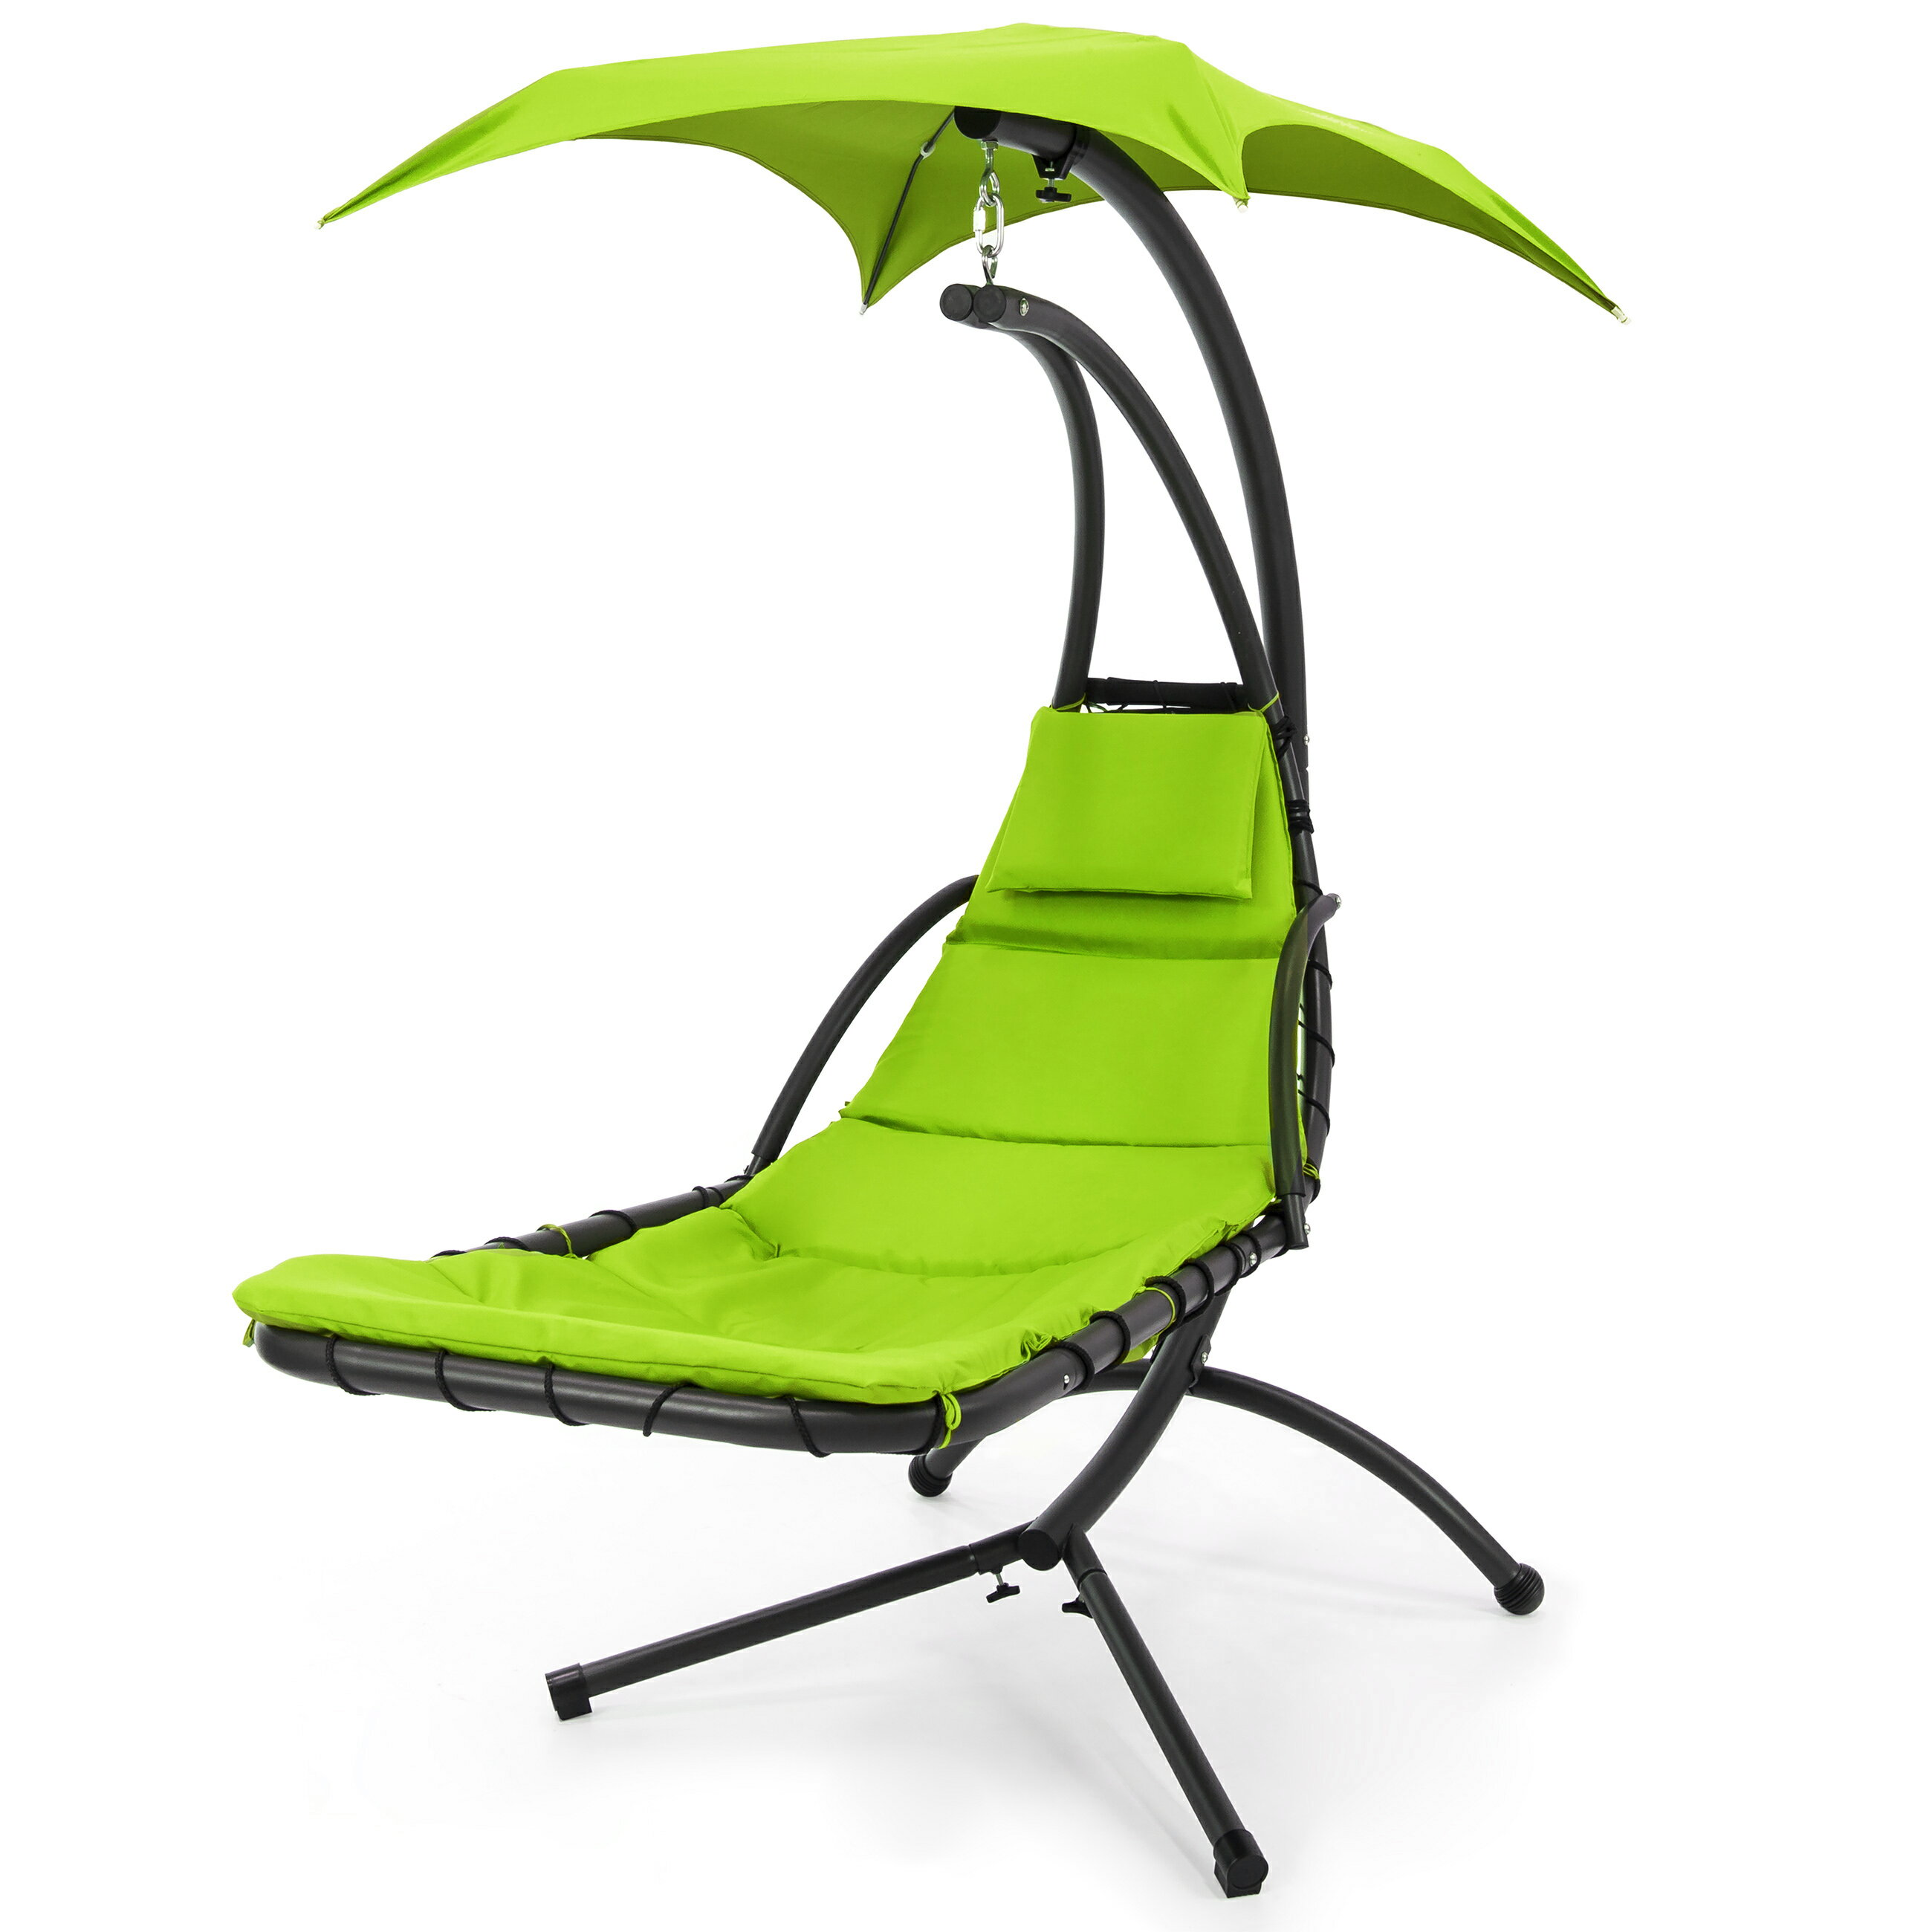 BestChoiceProducts: Best Choice Products Outdoor Porch Hanging ... on green glider chair, green accent chair, green living room chair, green club chair, green wicker chair, green recliner chair, green vanity chair, lime green chair, green office chair, adirondack lounge chair, green swing chair, green dining chair, green leather chair, green bar chair, green hammock chair, teal lounge chair, green arm chair, green egg chair, danish lounge chair, contour lounge chair,